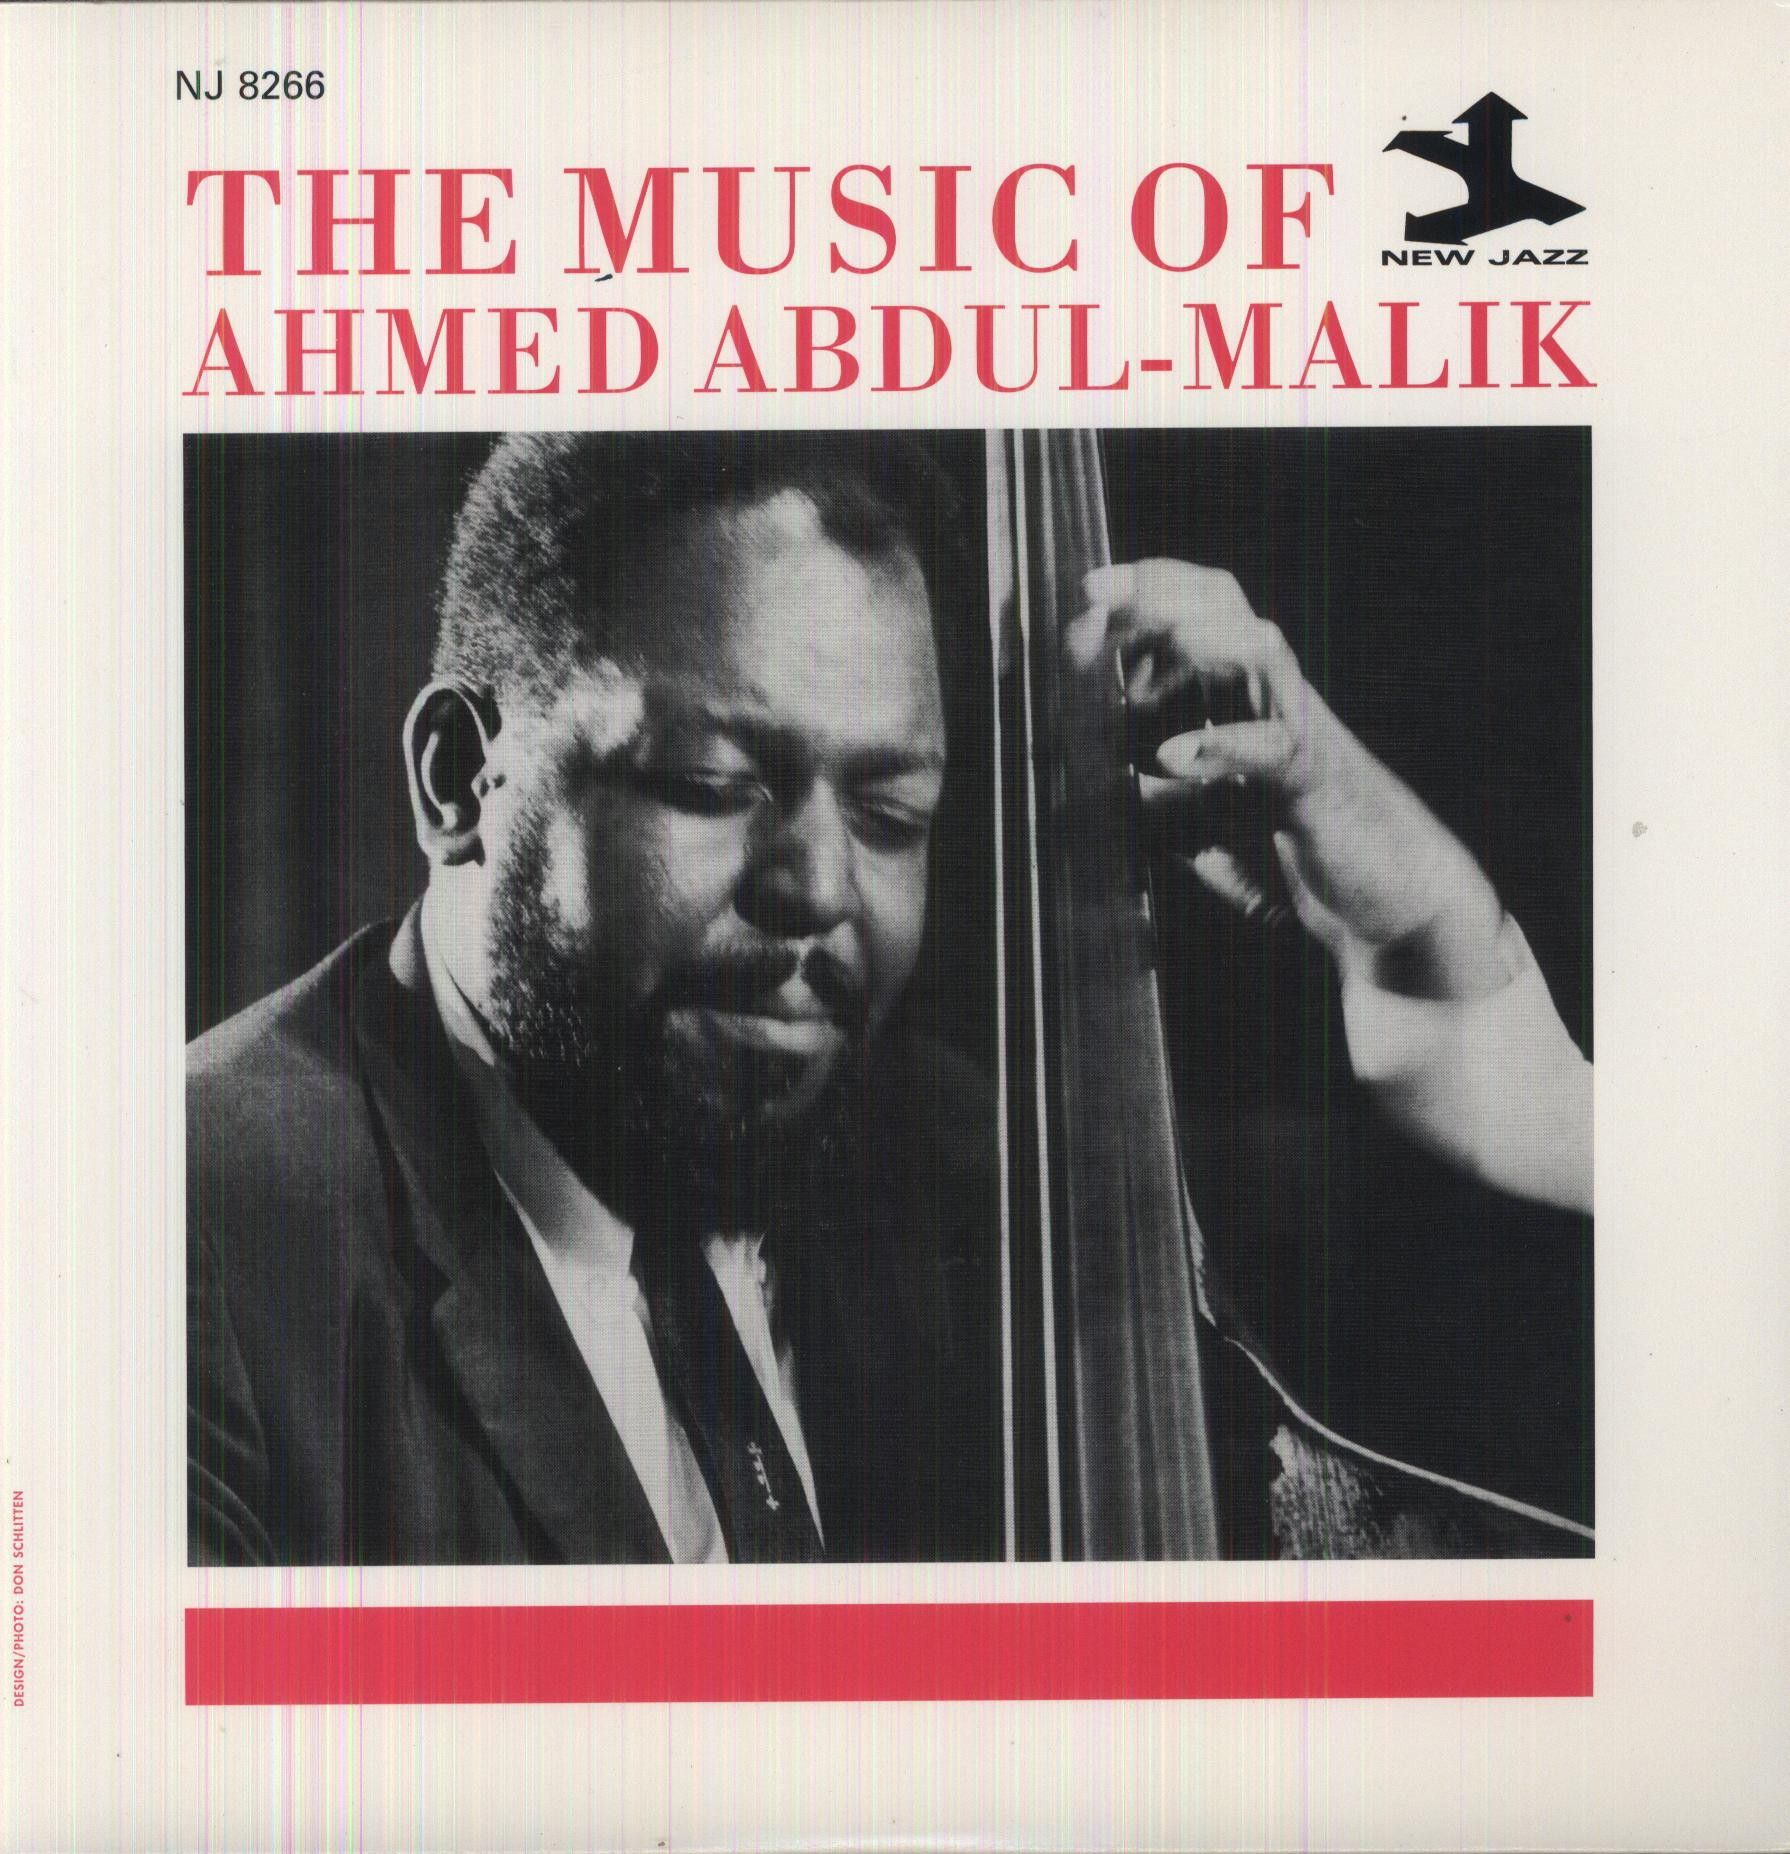 Ahmed Abdul Malik On The New Jazz Label Cover Design And